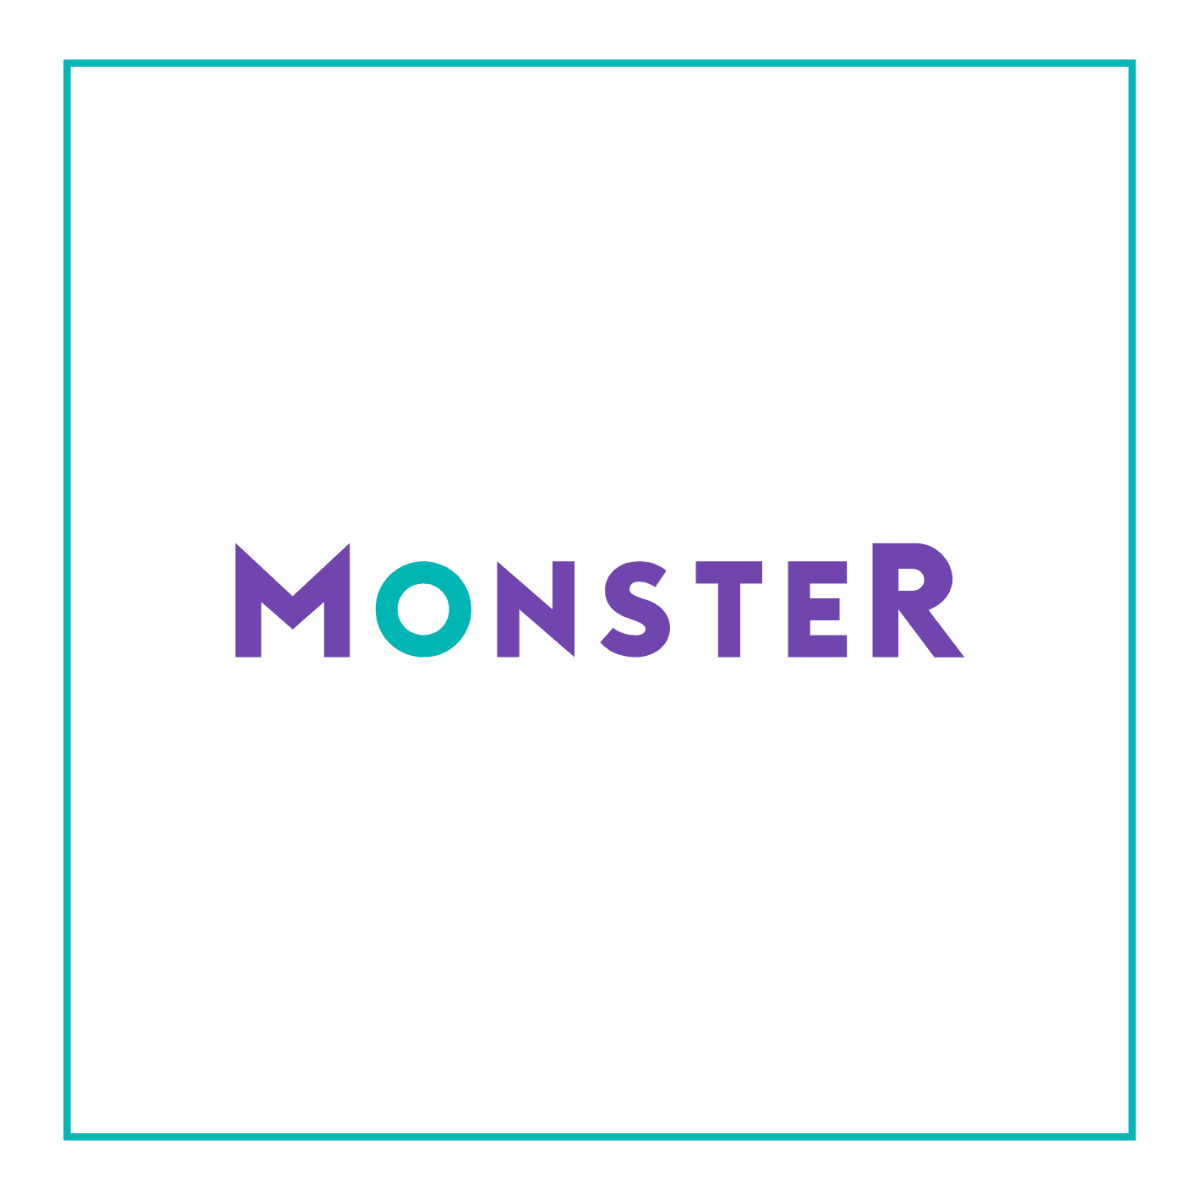 How To Find A Job With Monster   Review